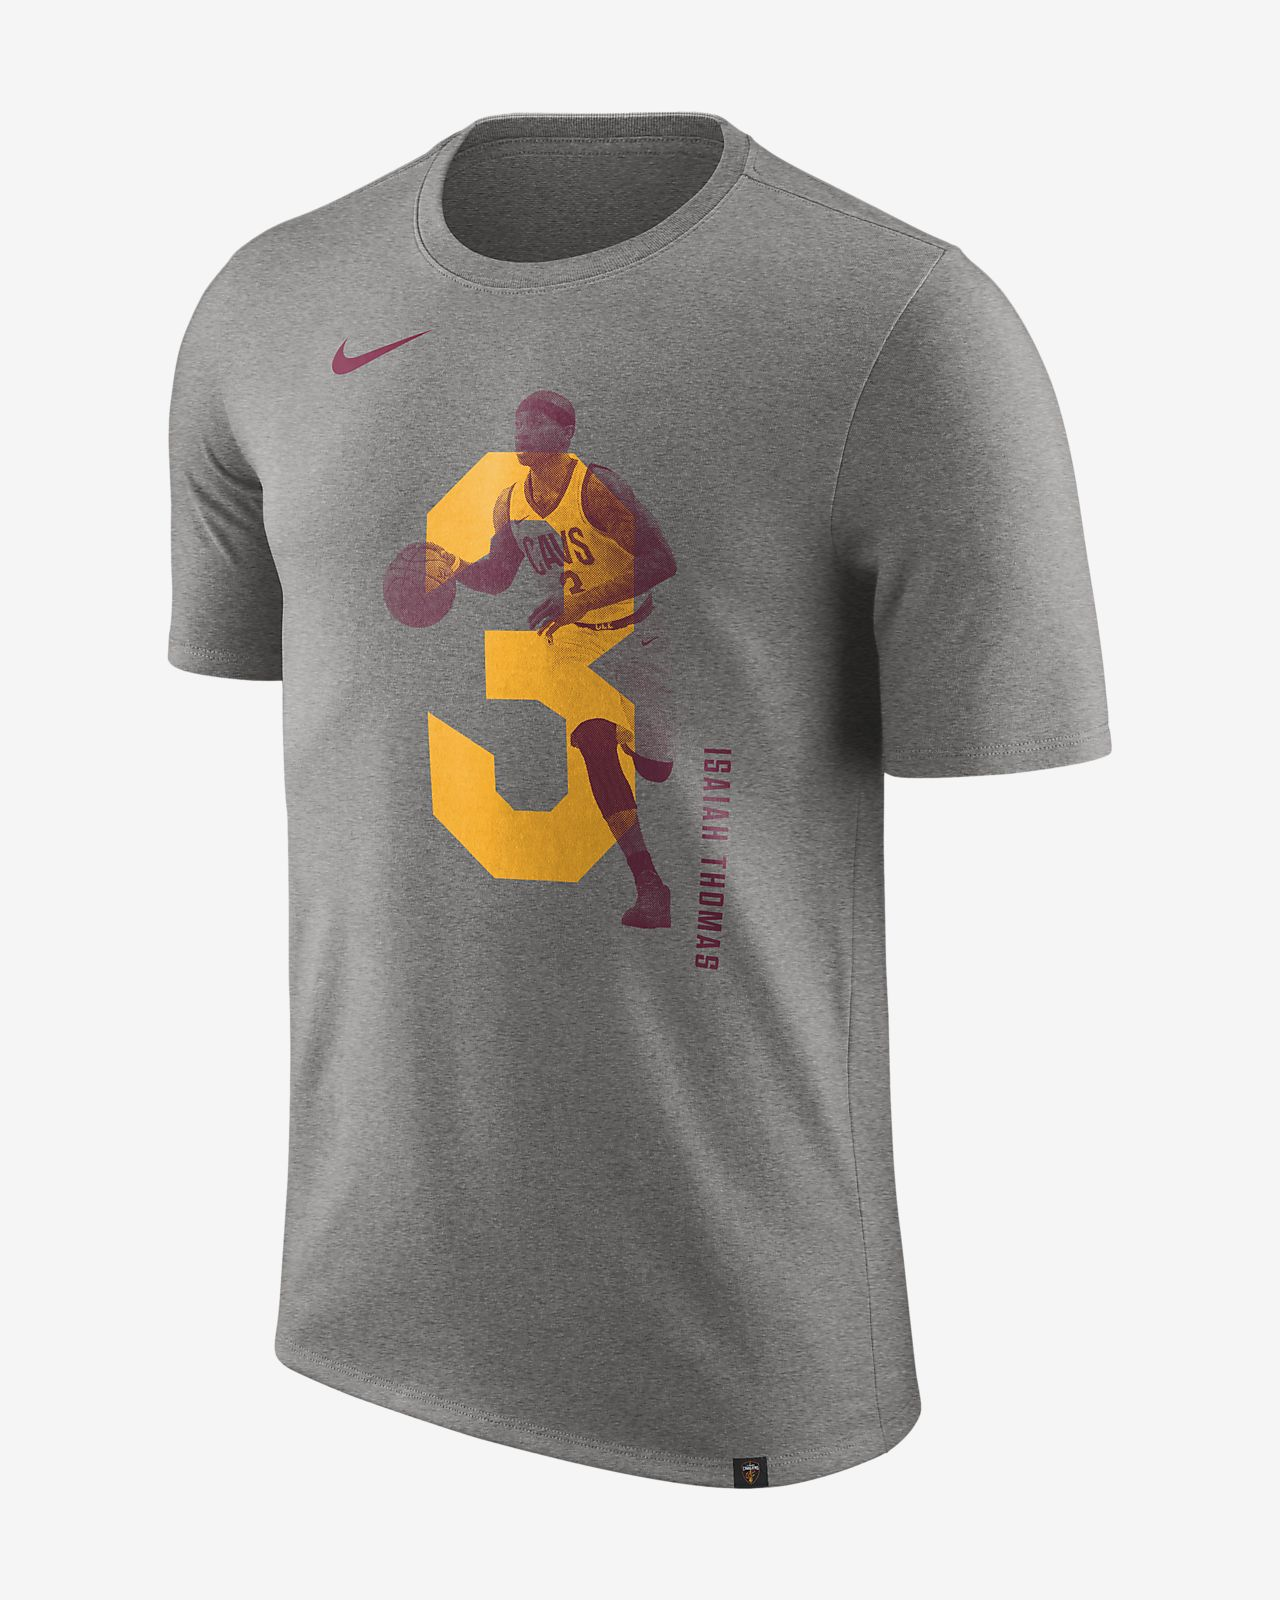 克利夫兰骑士队 (Isaiah Thomas) Nike Dri-FIT Player 男子 NBA T恤